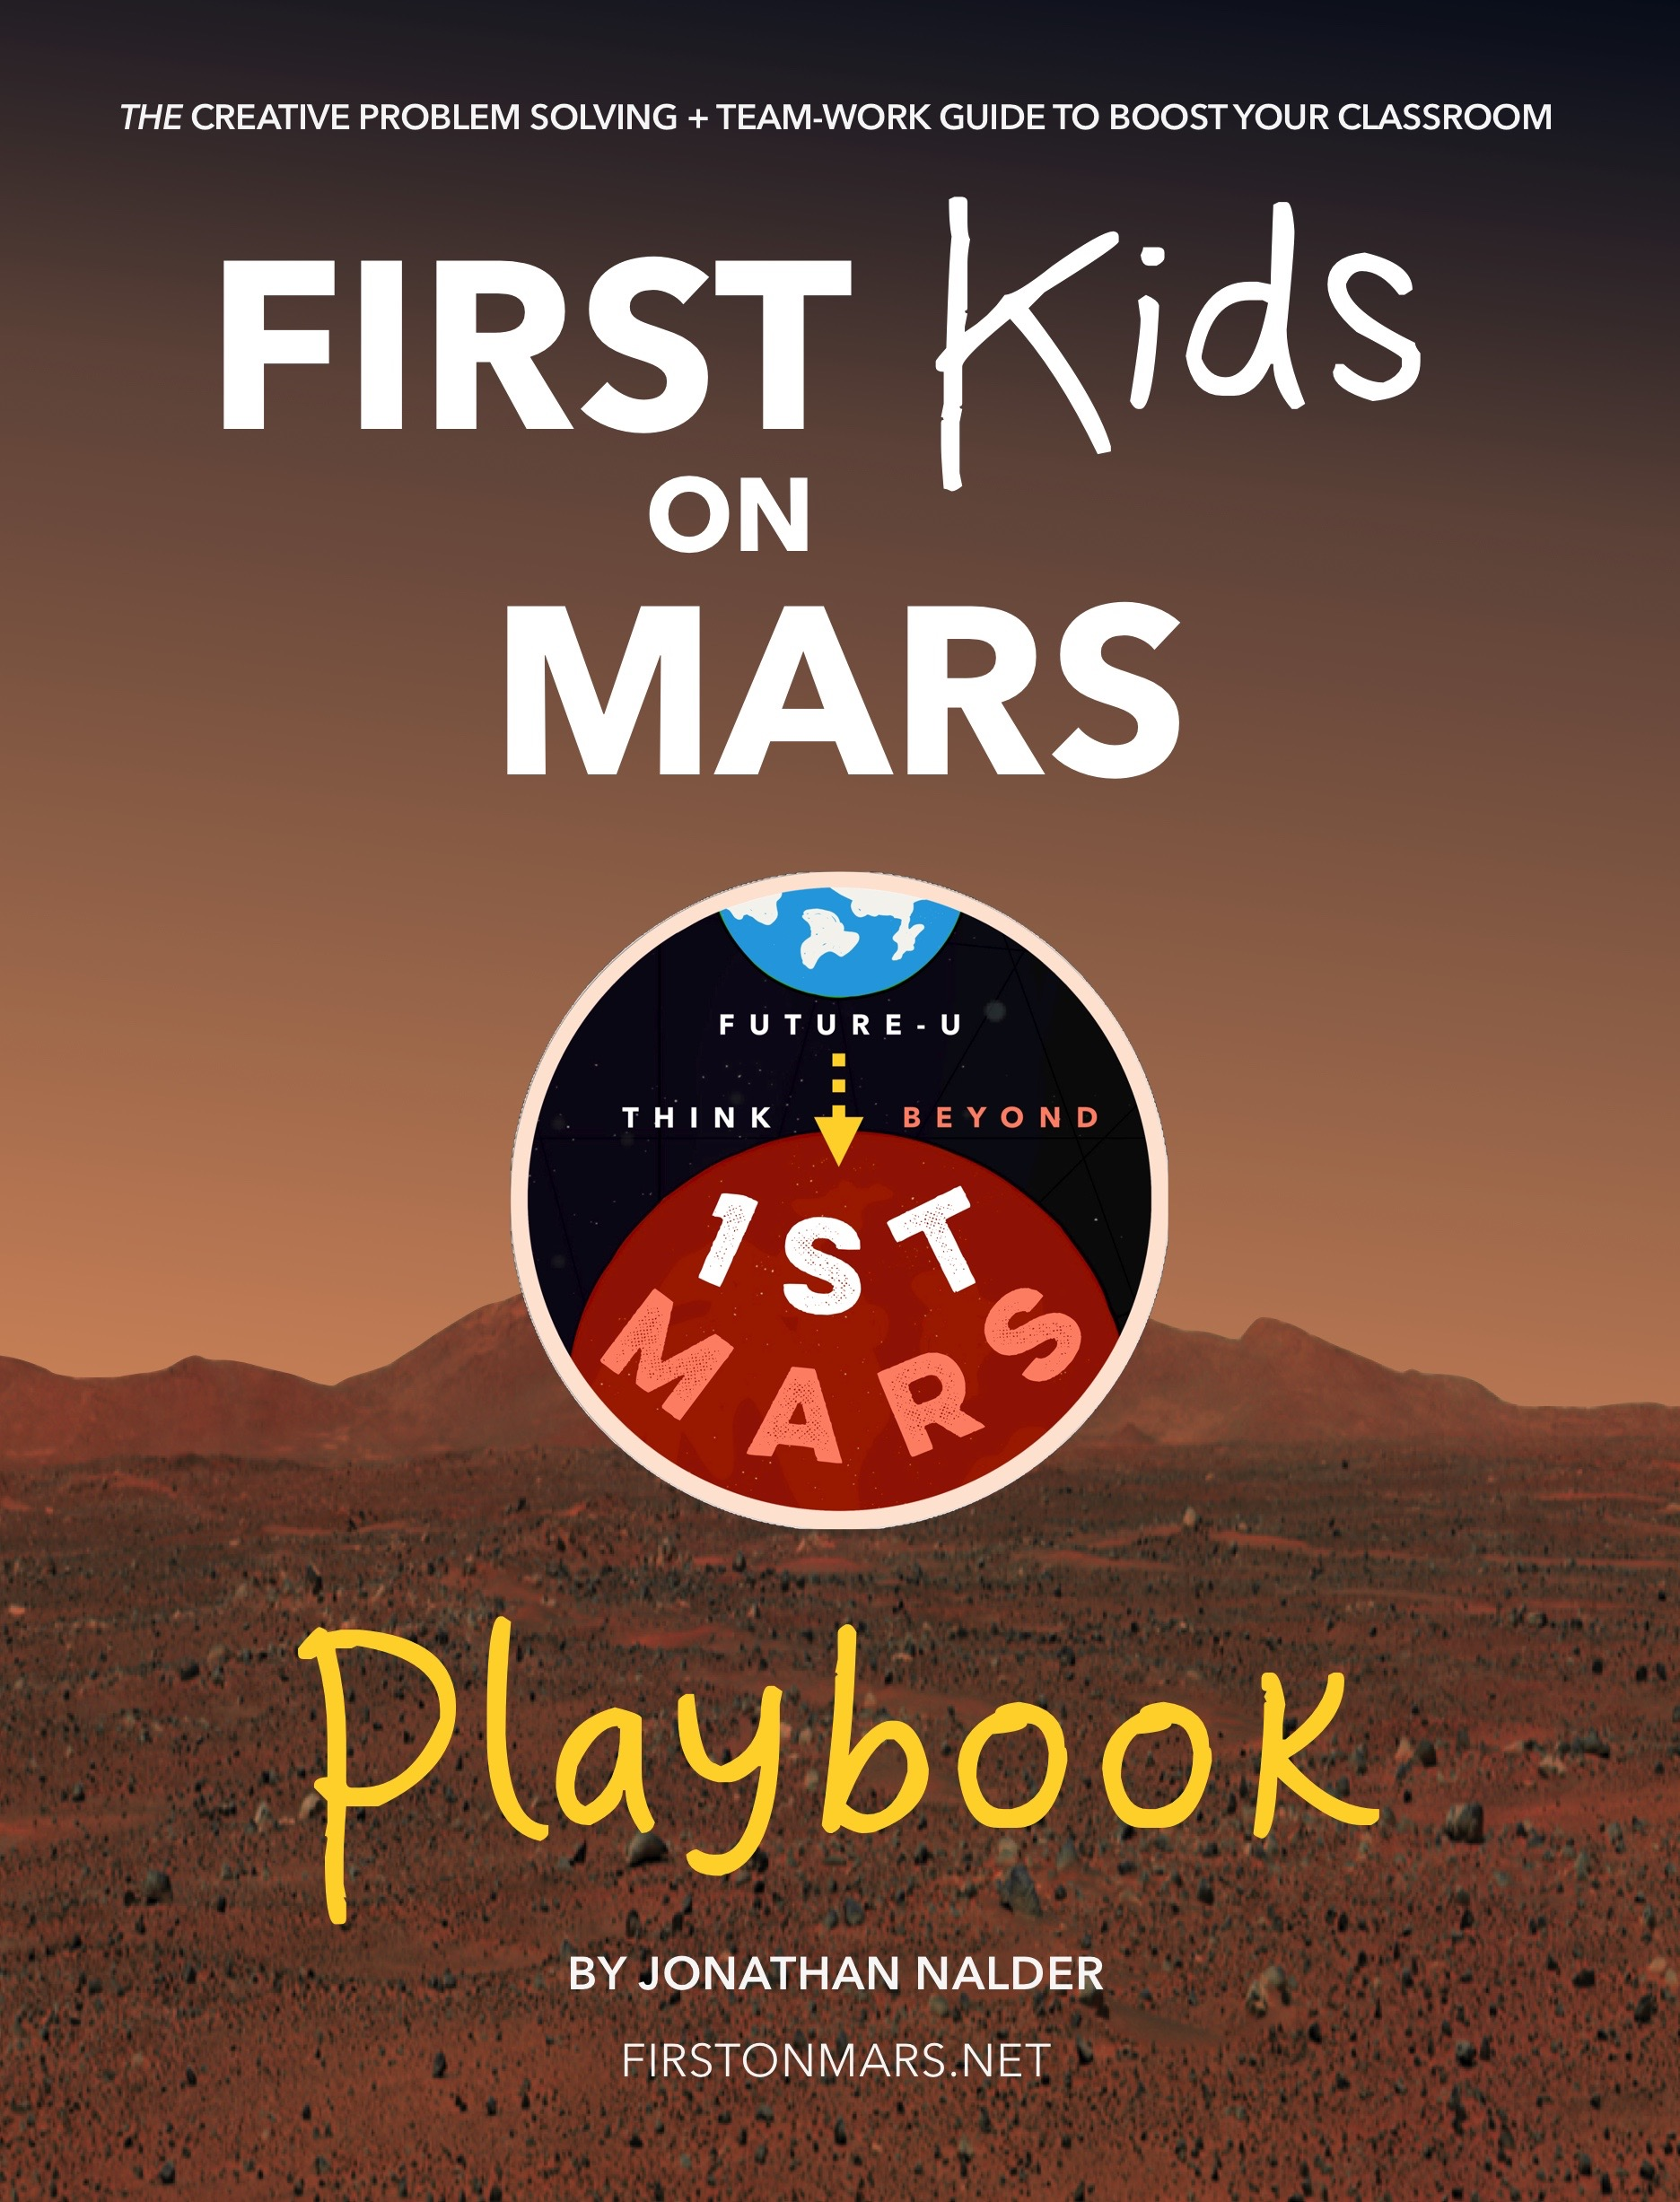 First Kids on Mars playbook cover.jpg